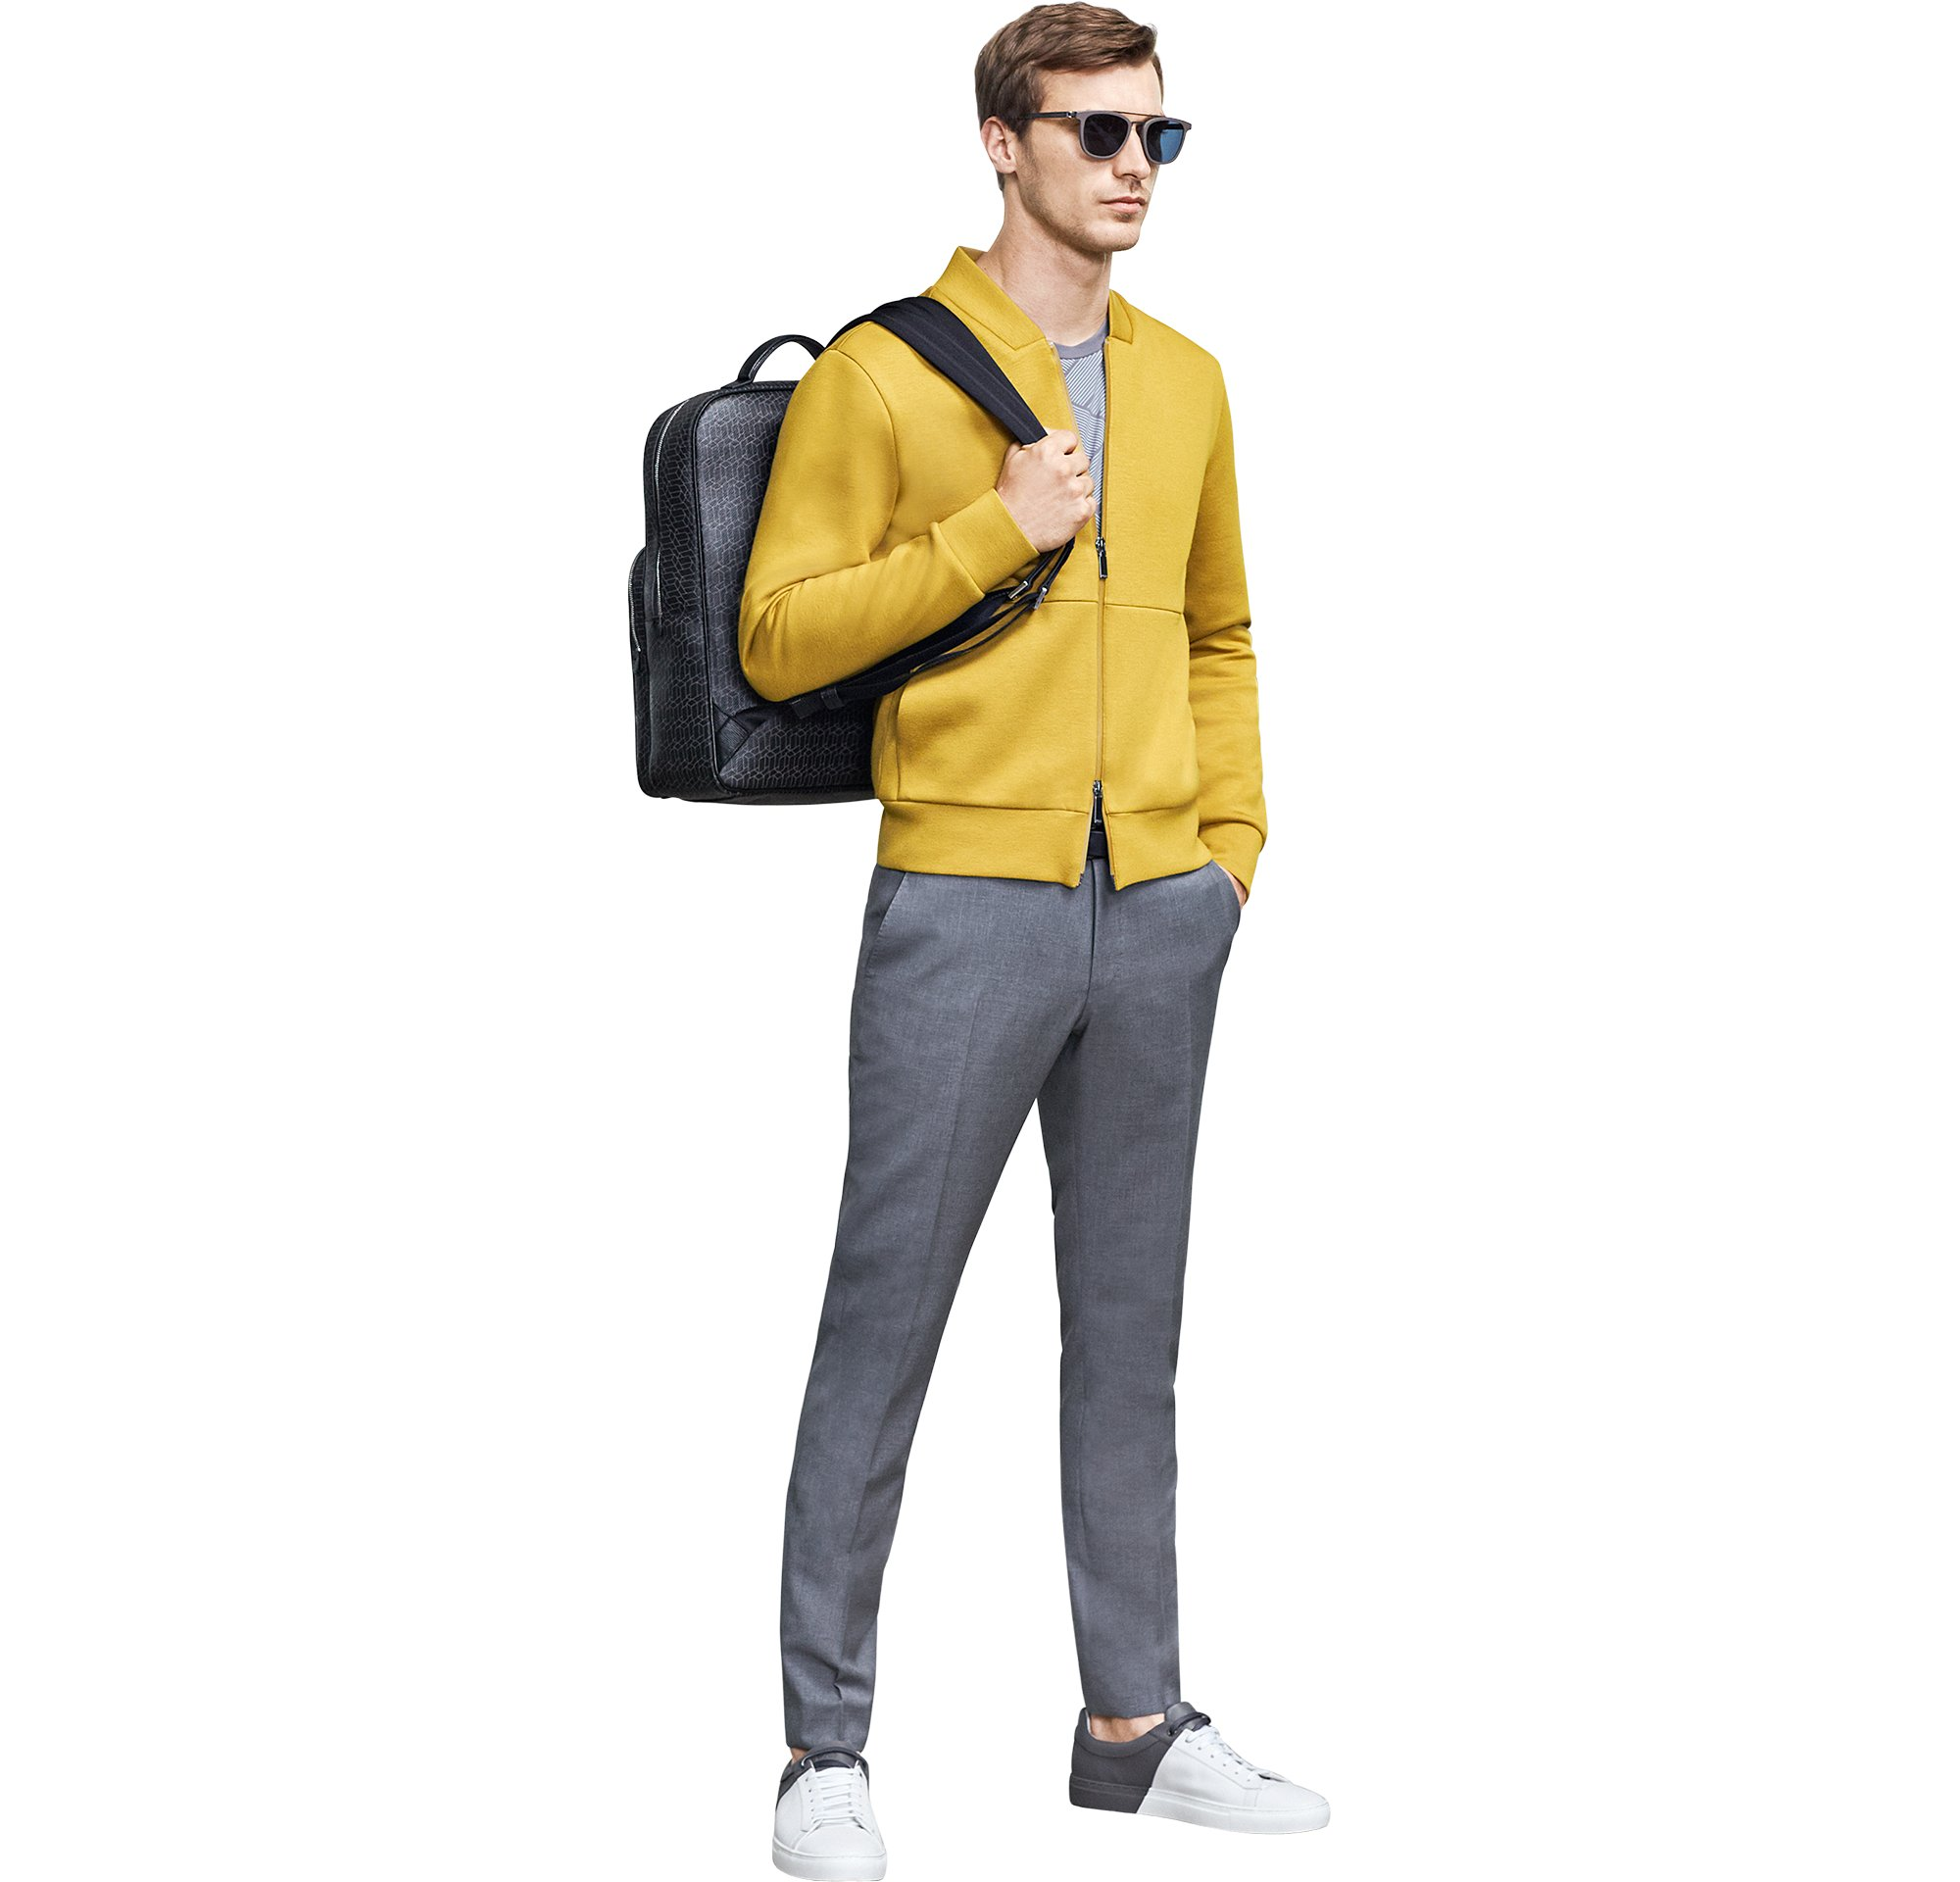 Yellow jersey over grey jersey and grey trousers with backpack and sneakers by BOSS